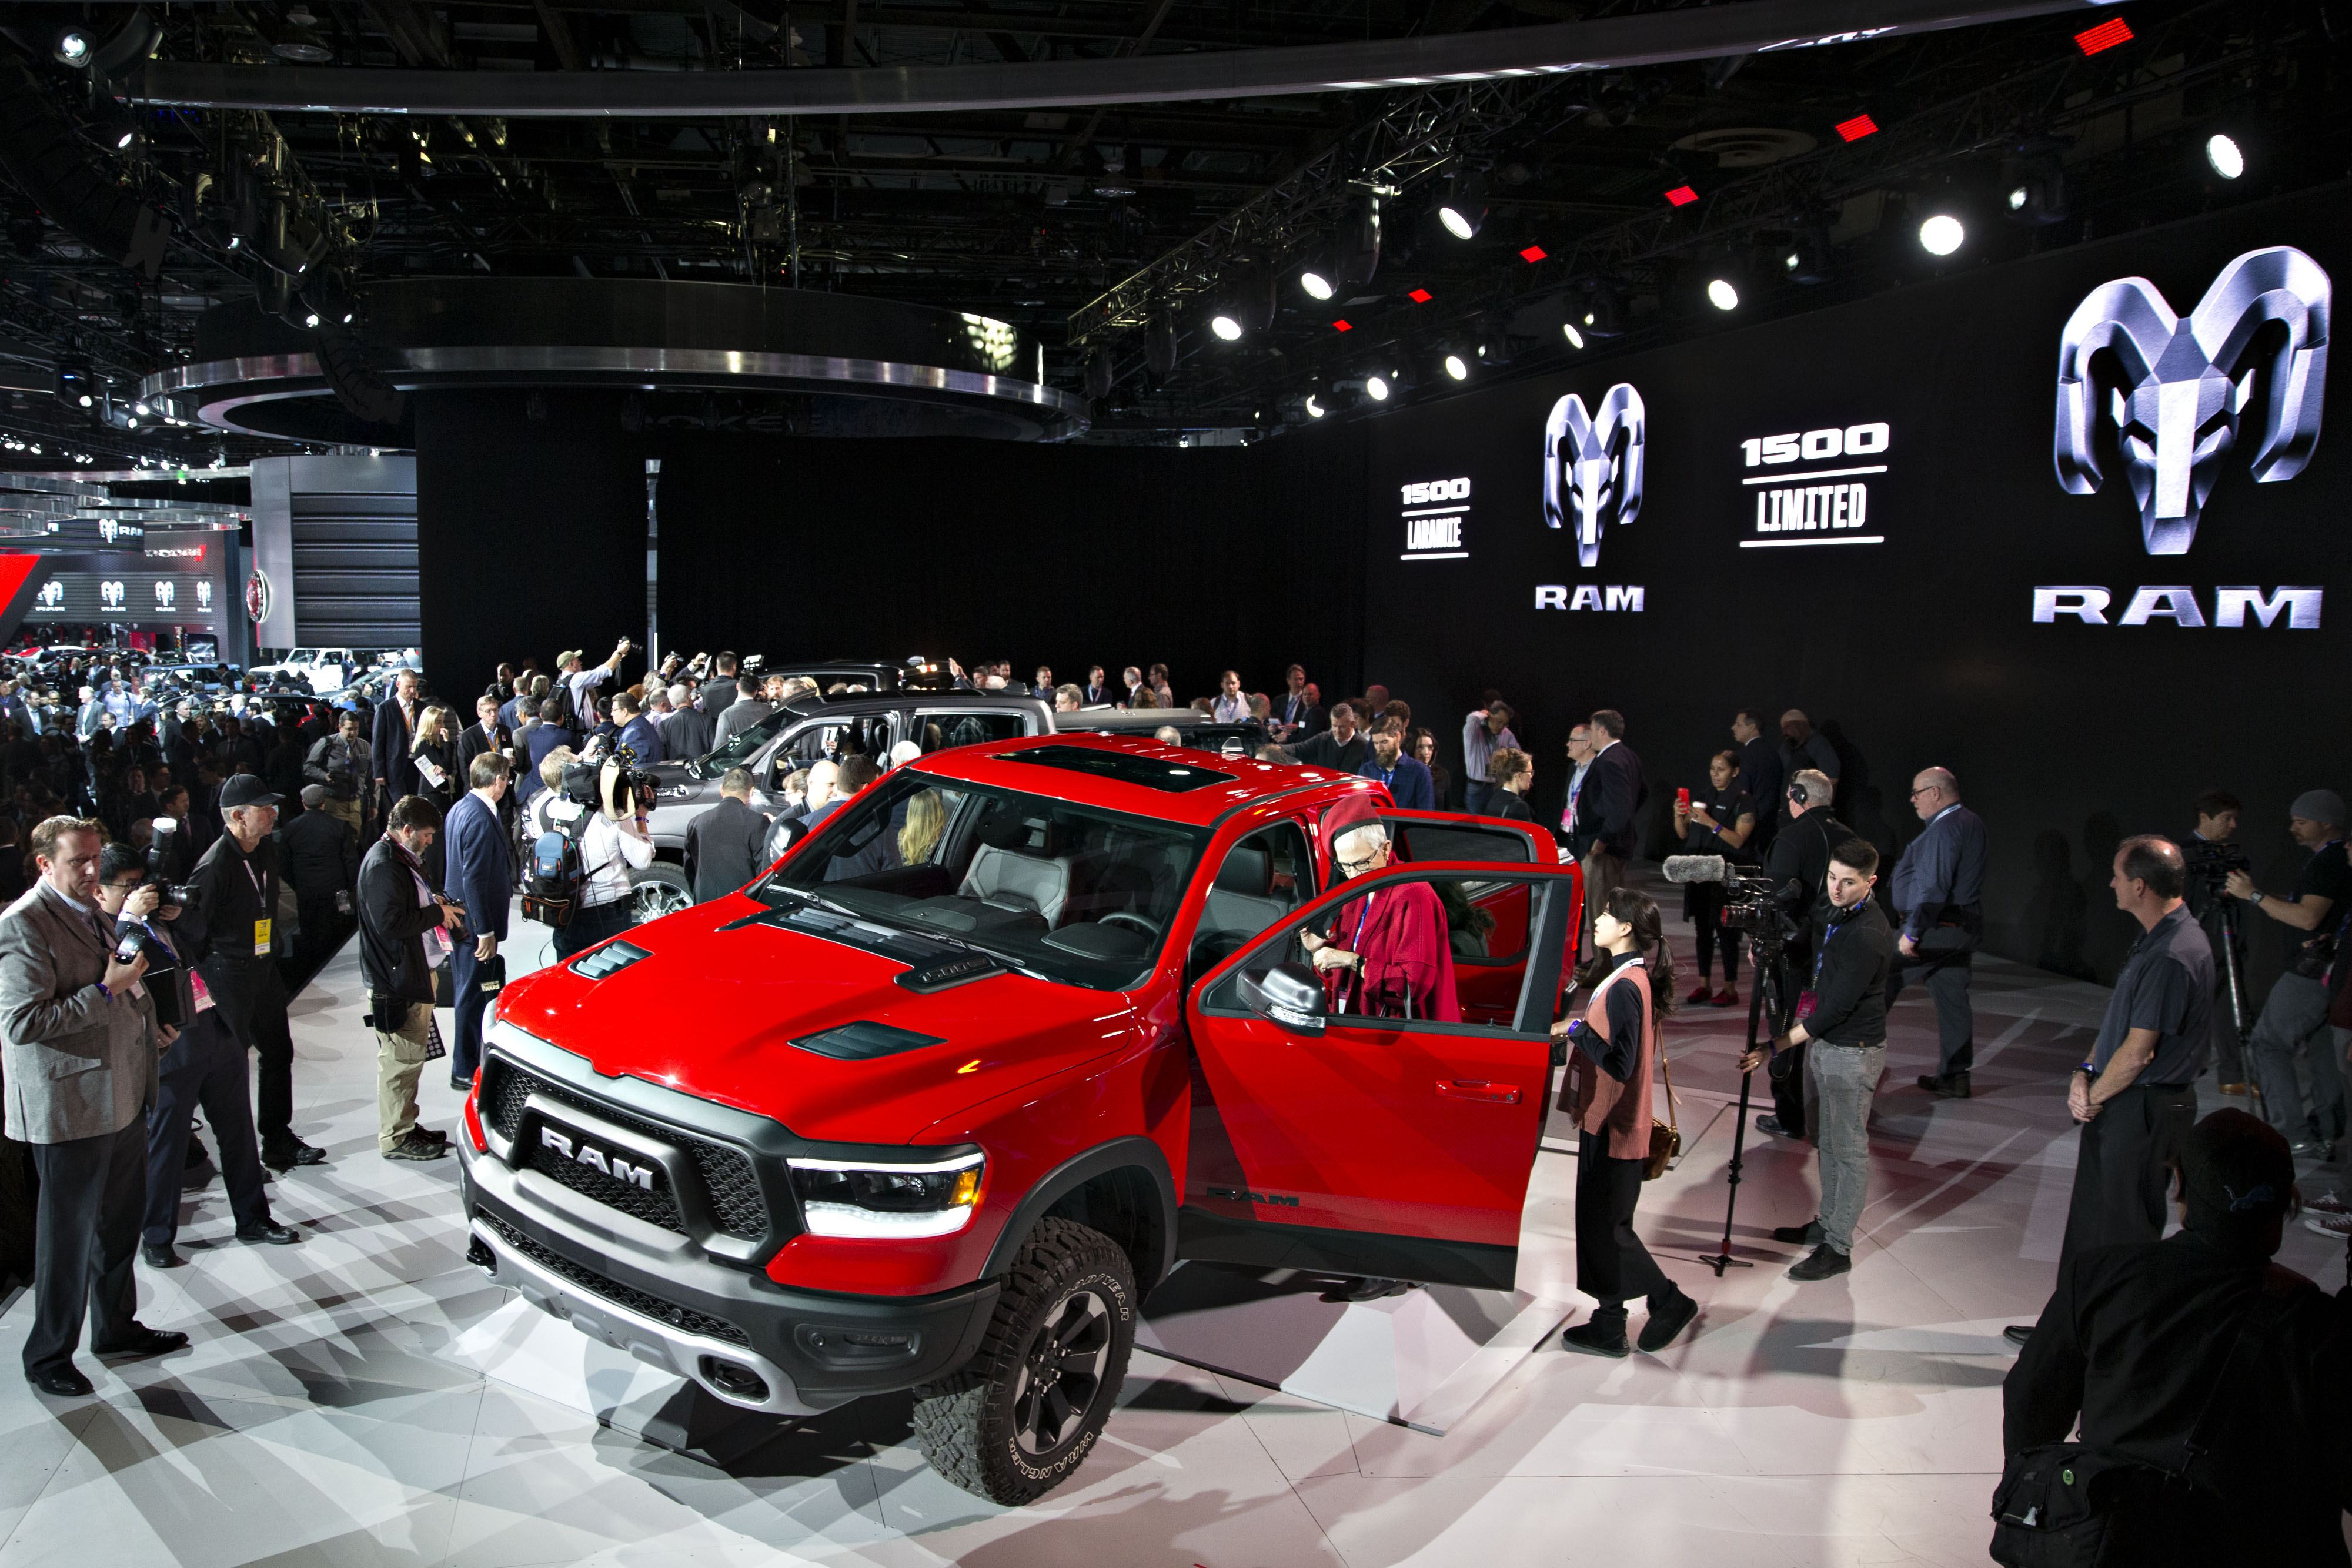 Ram Redesign Improves Fiat Chrysler's Shot at Luxury Prices | Bloomberg